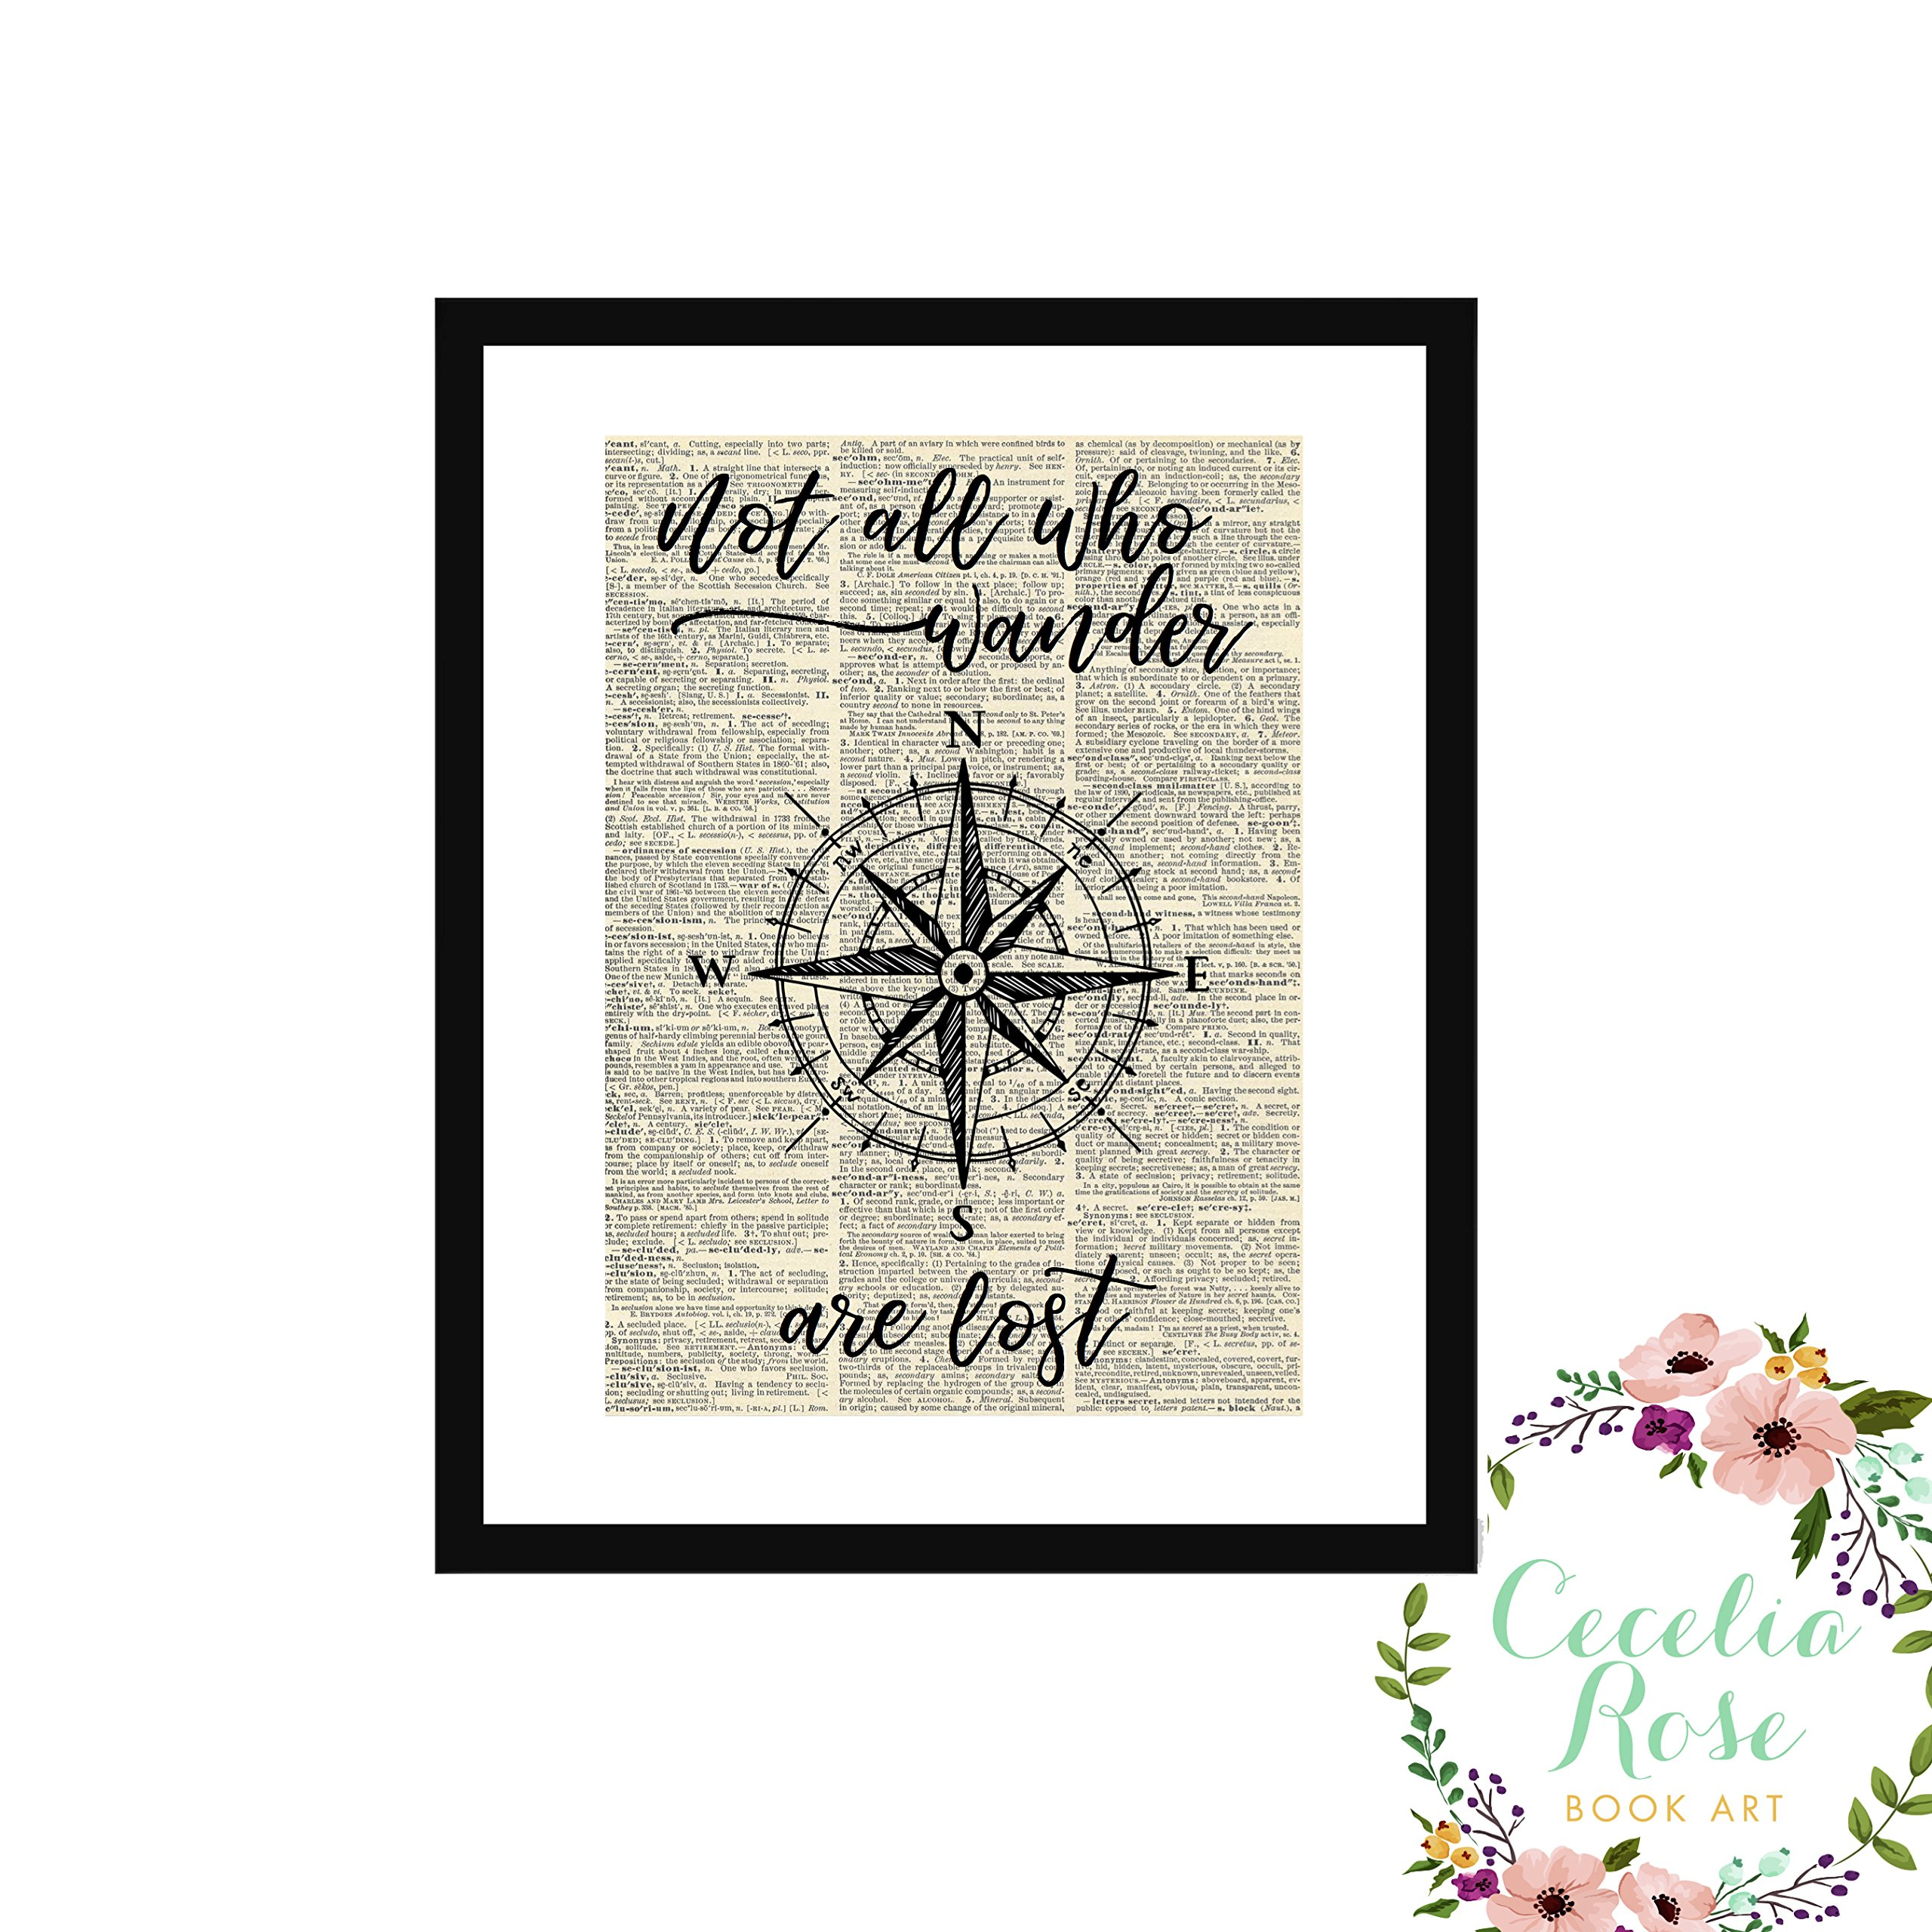 Not All Who Wander Are Lost J. R. R. Tolkien All That Is Gold Does Not Glitter Lord of The Rings Nautical Compass Farmhouse Inspirational Quote Upcycled Vintage Book Page Unframed